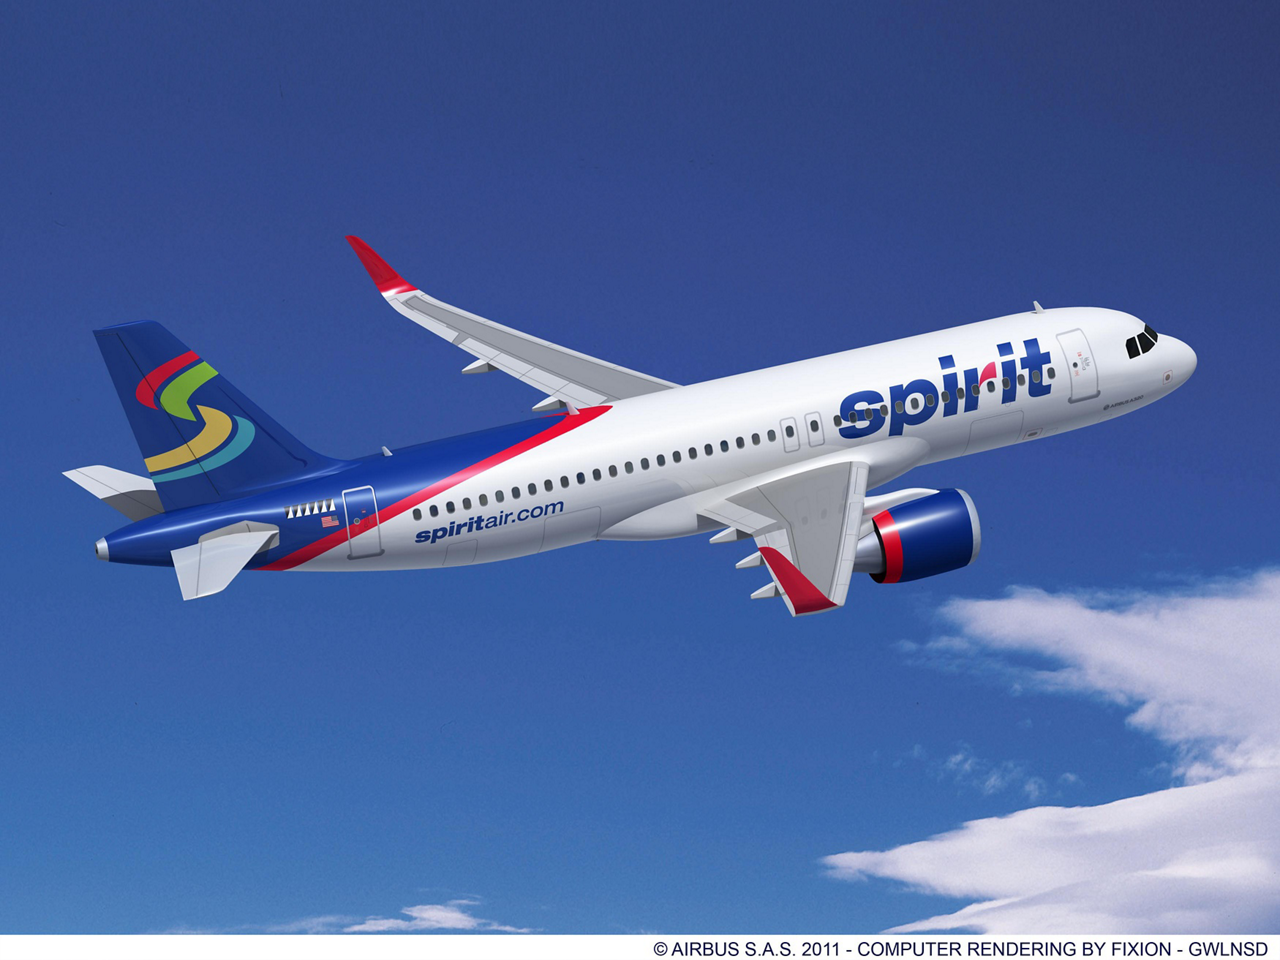 Spirit Airlines and Airbus signed today at the Dubai Airshow a Memorandum of Understanding (MoU) for 75 single-aisle aircraft, comprising 45 A320neo aircraft (new engine option) and 30 A320s. (15 November 2011)